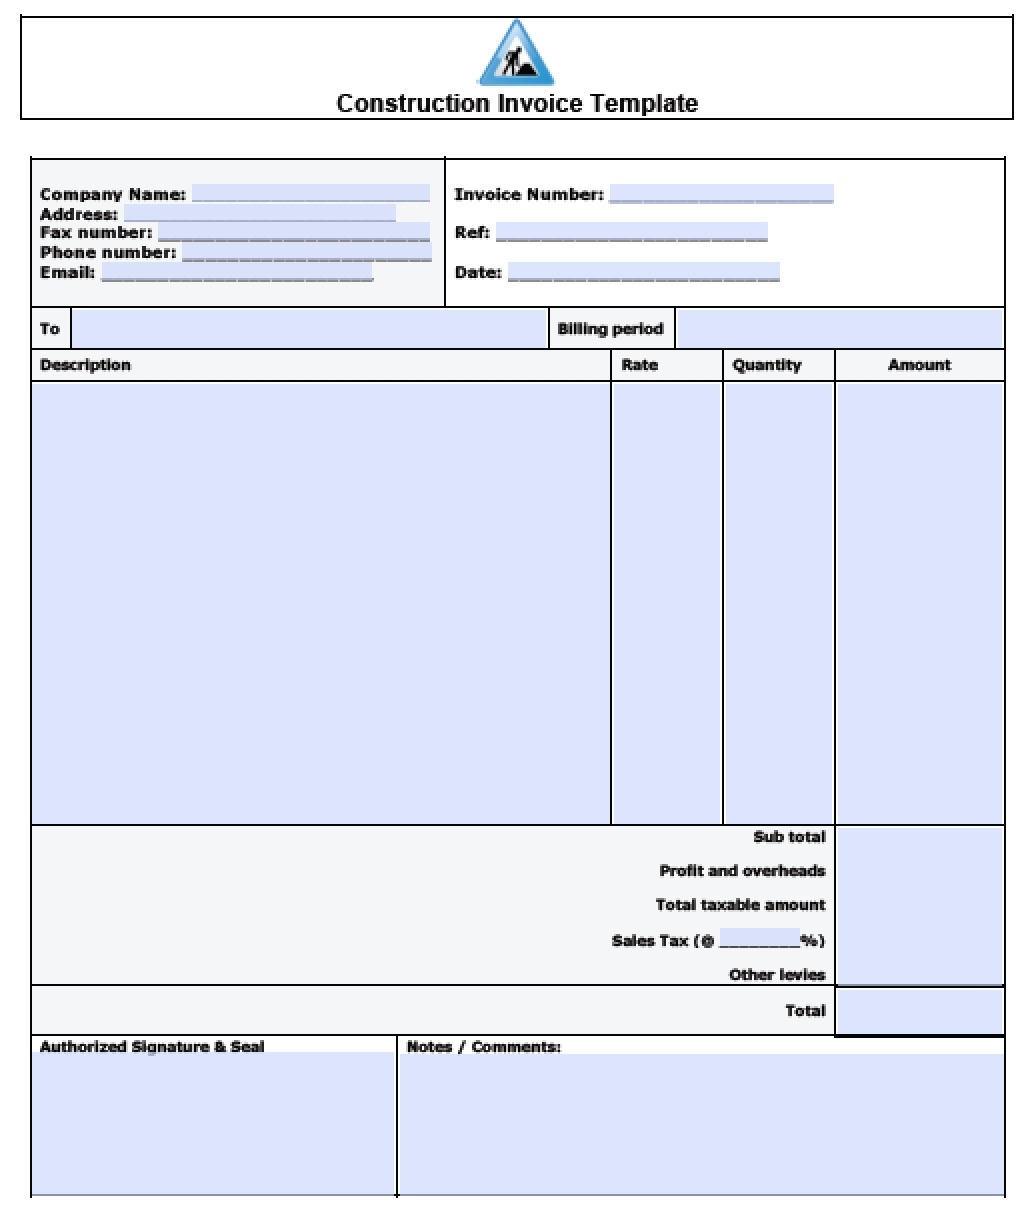 free construction invoice template excel pdf word doc construction invoice template excel